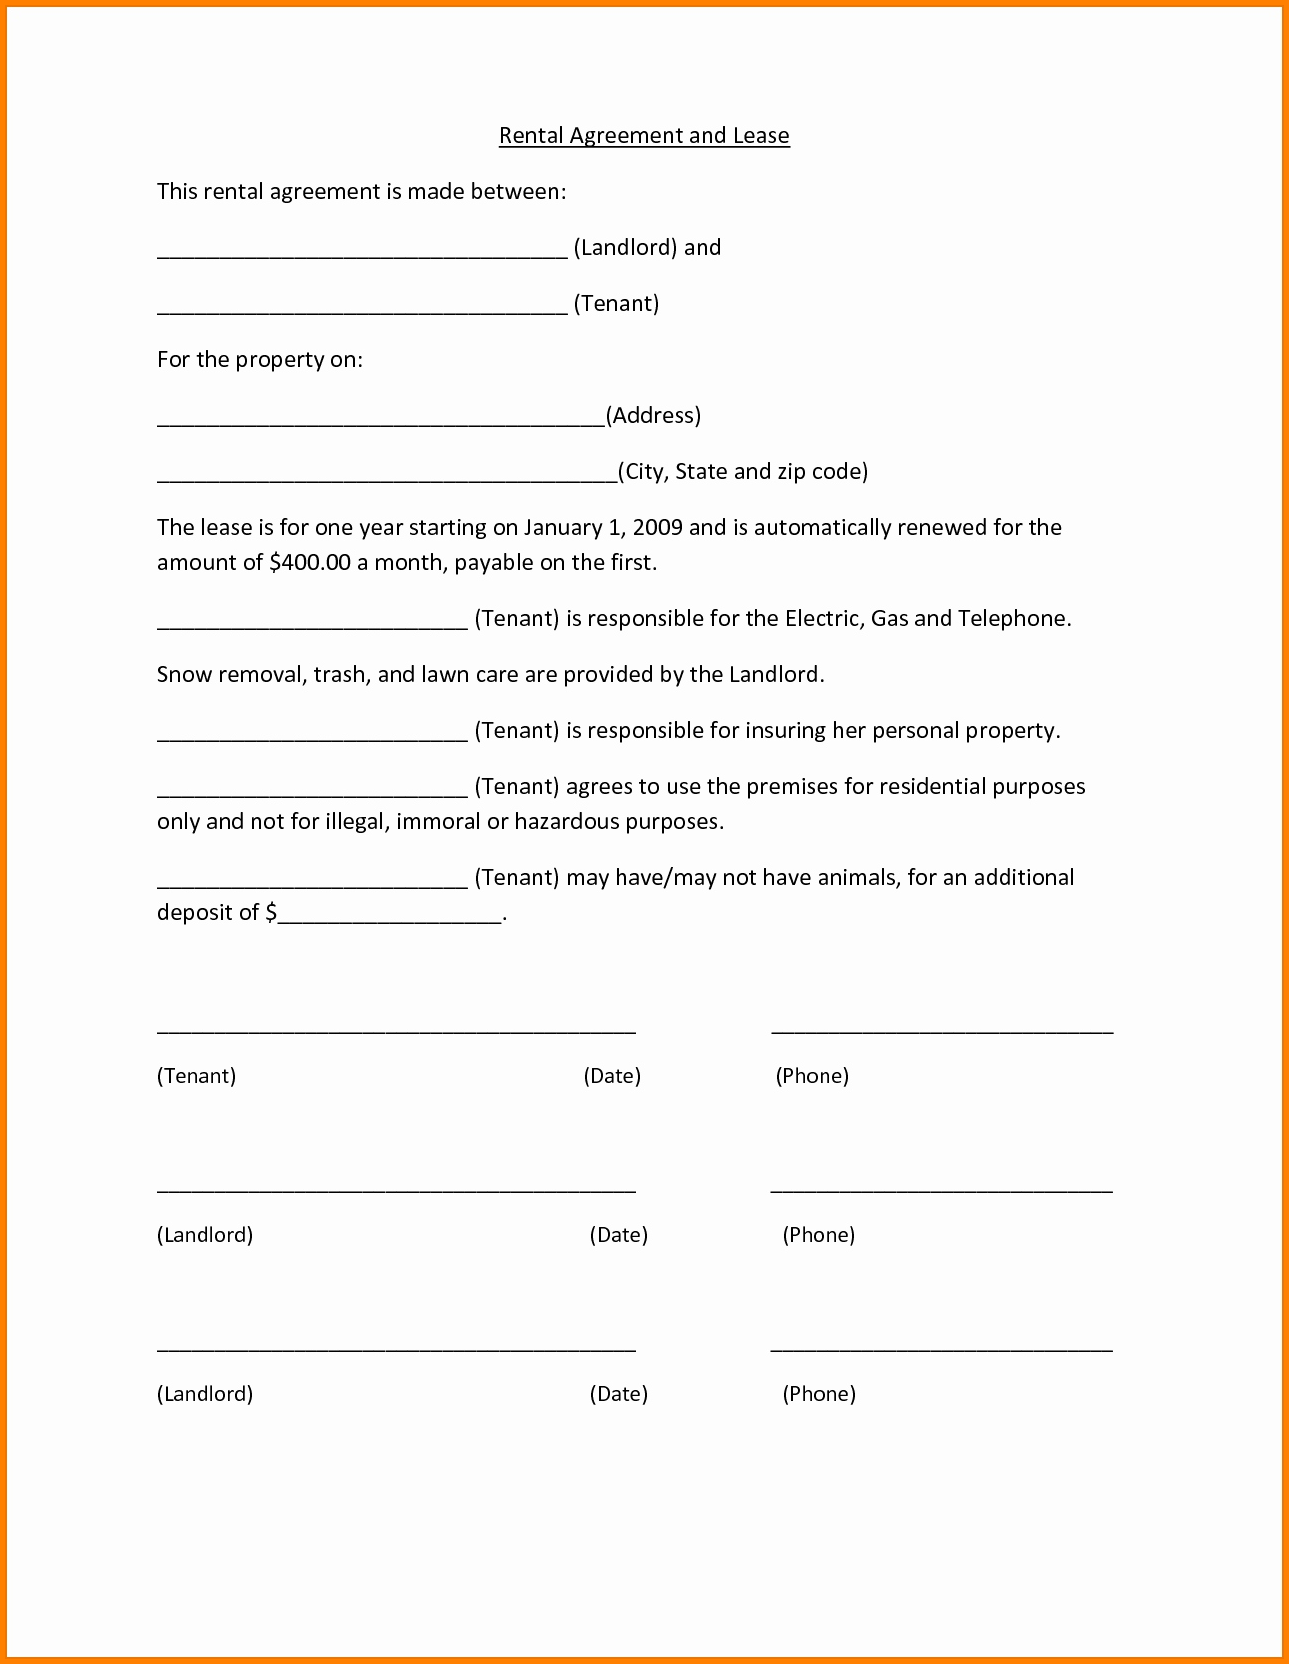 Rental Lease Form Word Document Universal Network